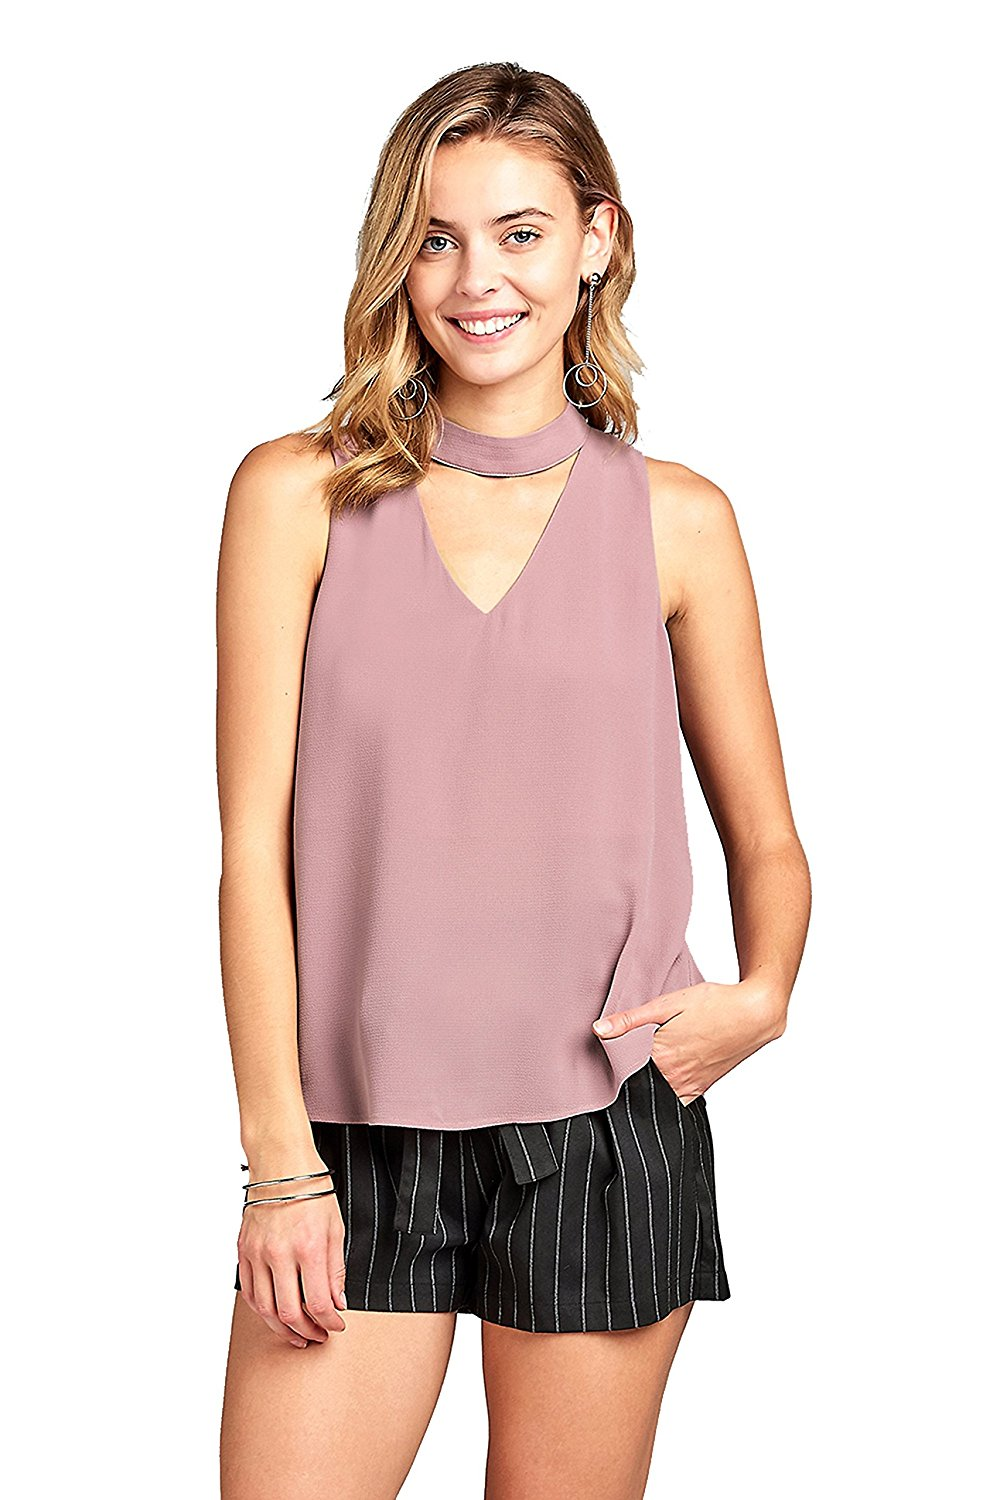 Khanomak Sleeveless Double V Neck With Choker Semi Sheer Crepe Chiffon Top